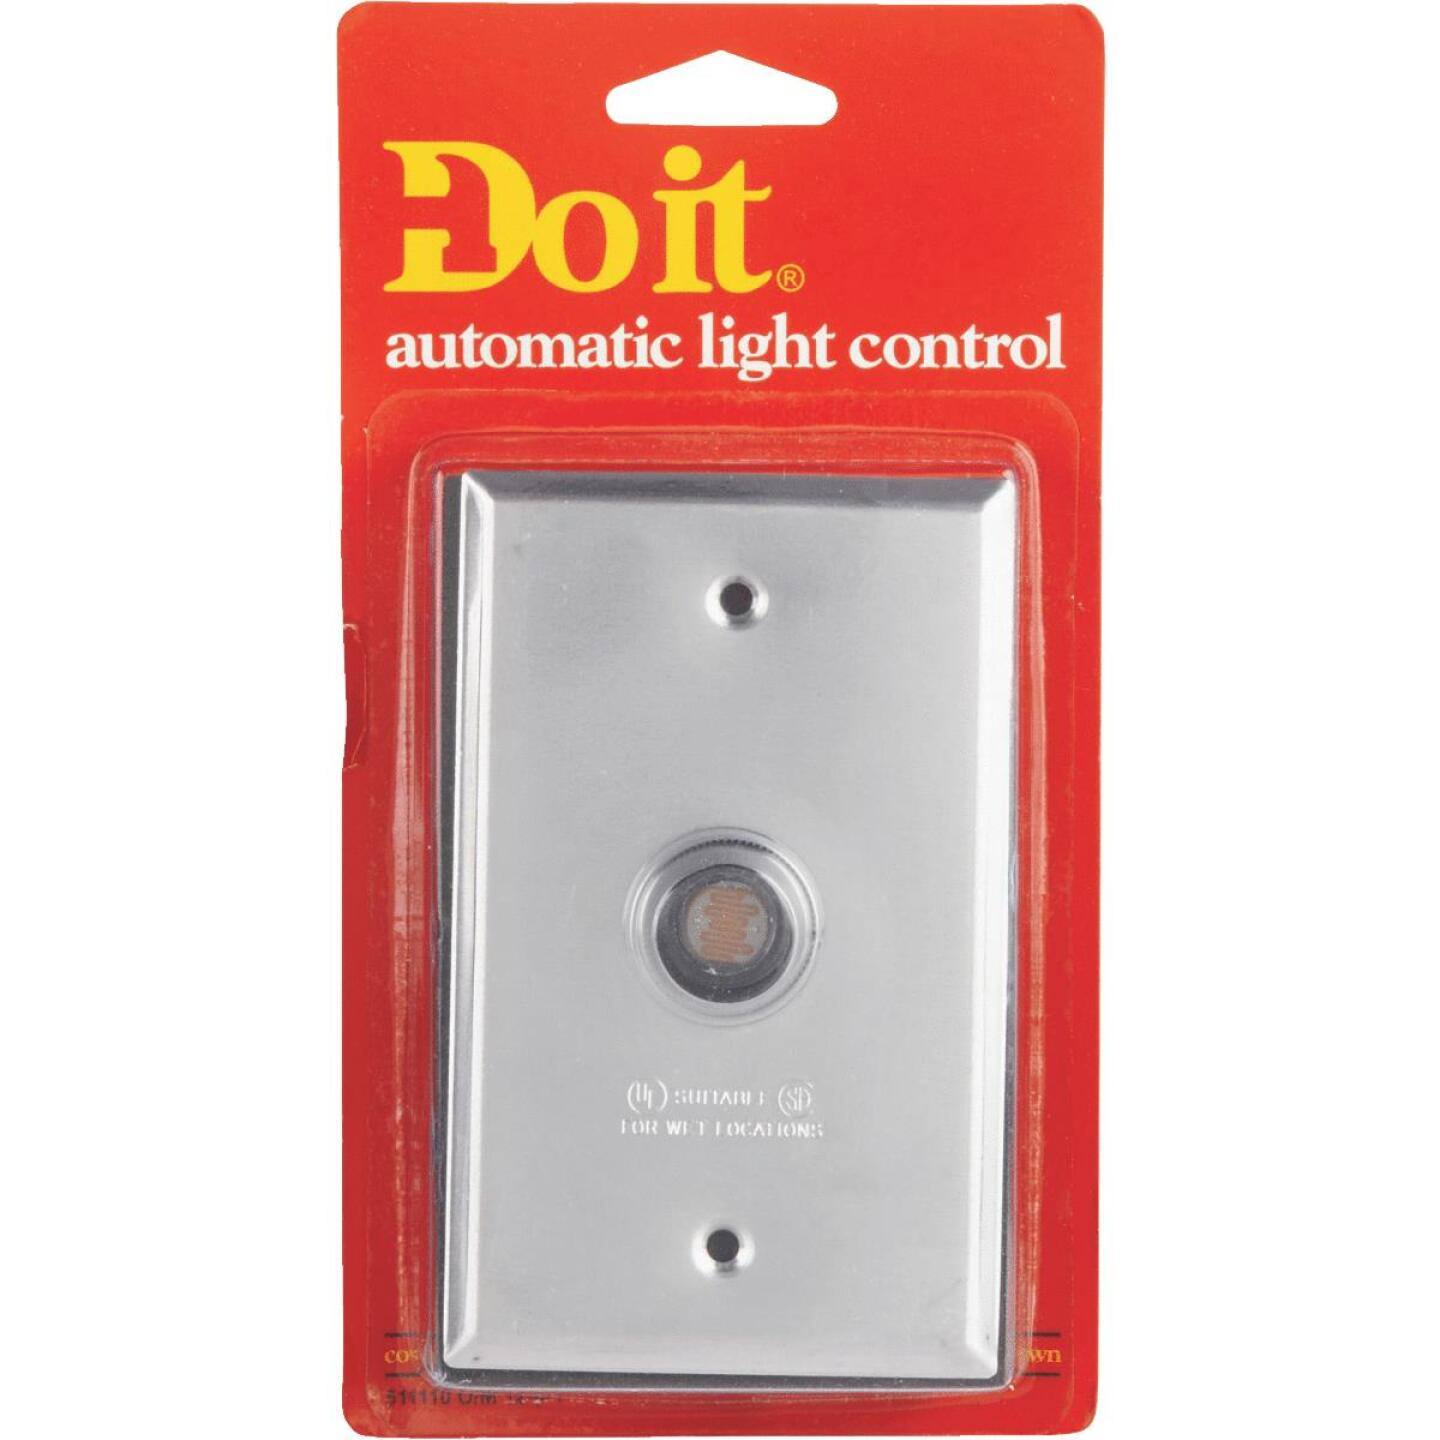 Do it Hard Wire Aluminum Photocell Lamp Control with Switch Plate Image 2